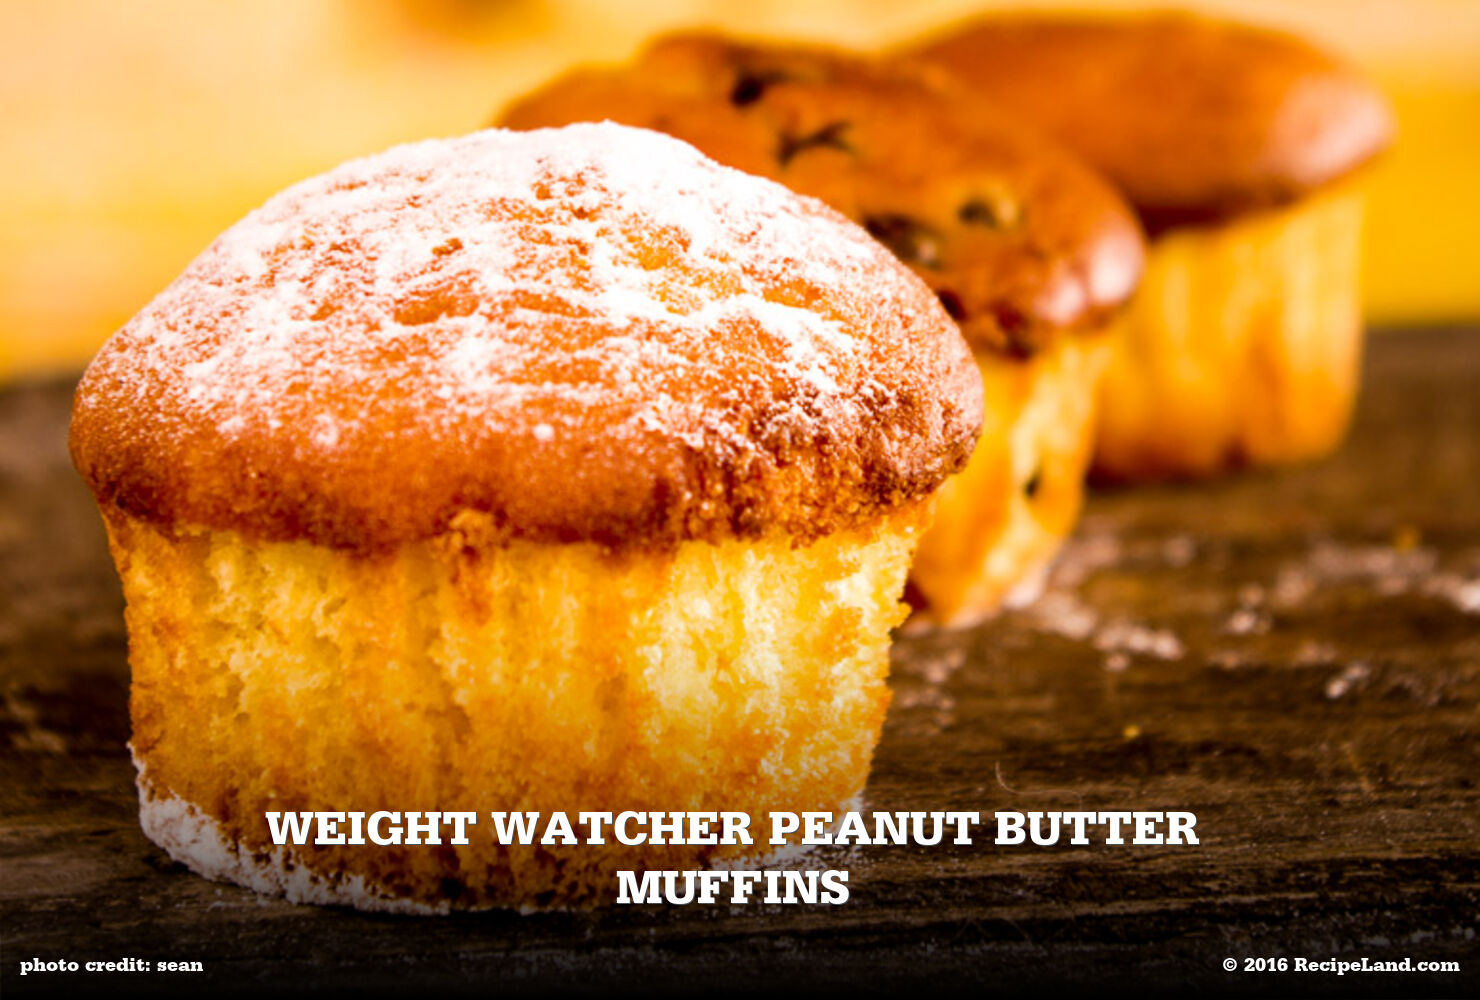 Weight Watcher Peanut Butter Muffins